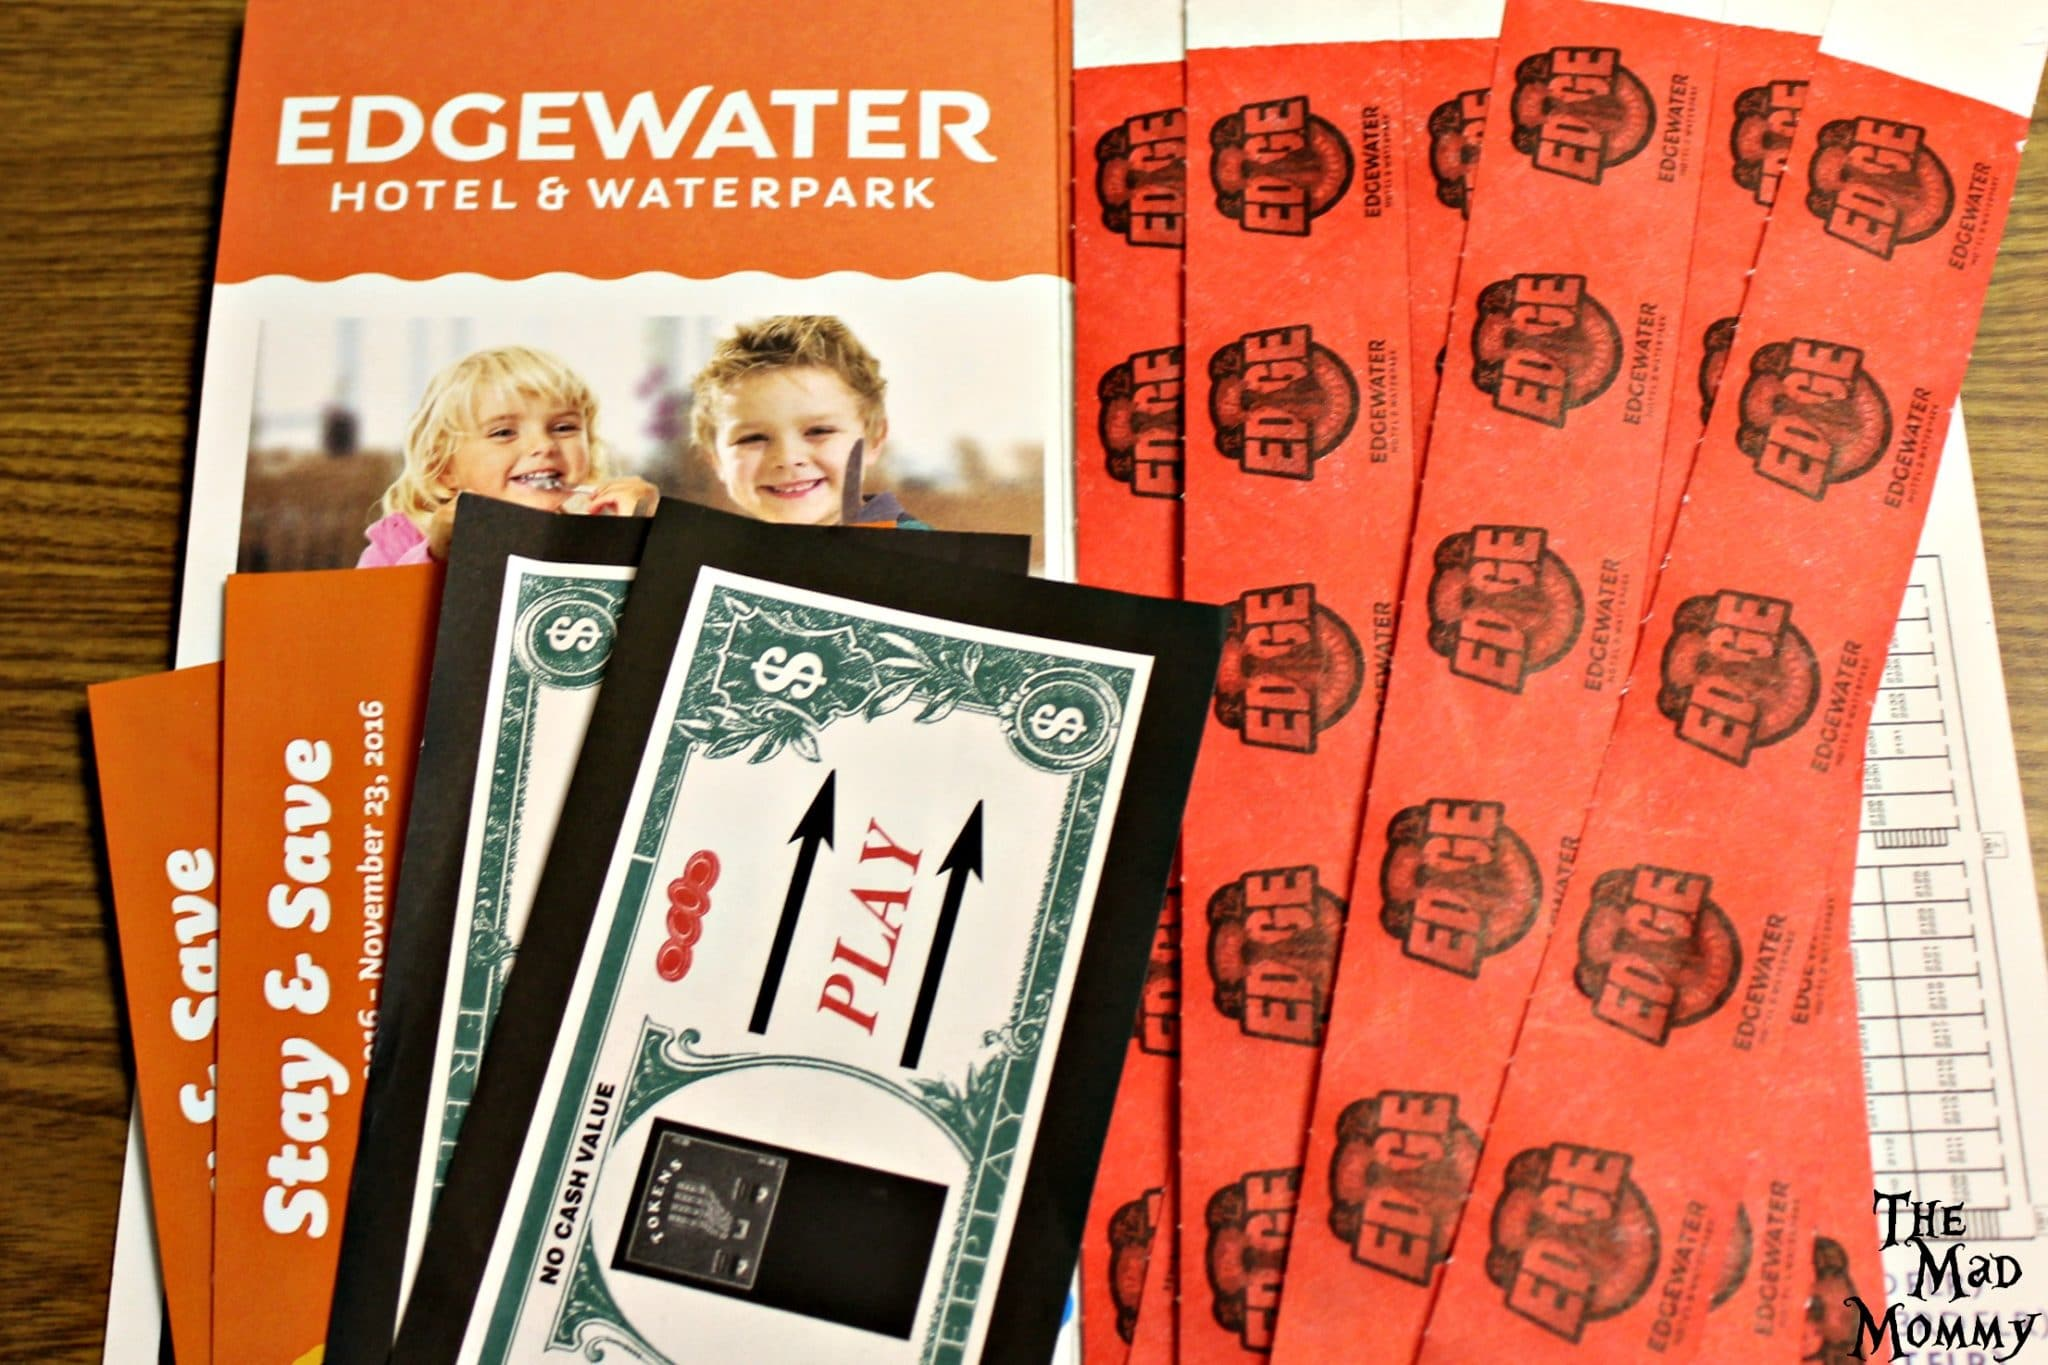 When you book a room at the Edgewater, you receive wristbands for the waterpark, some free play for the arcade, coupons for your next stay and, my favorite, BOGO drink chips for the bar and coffee shop!